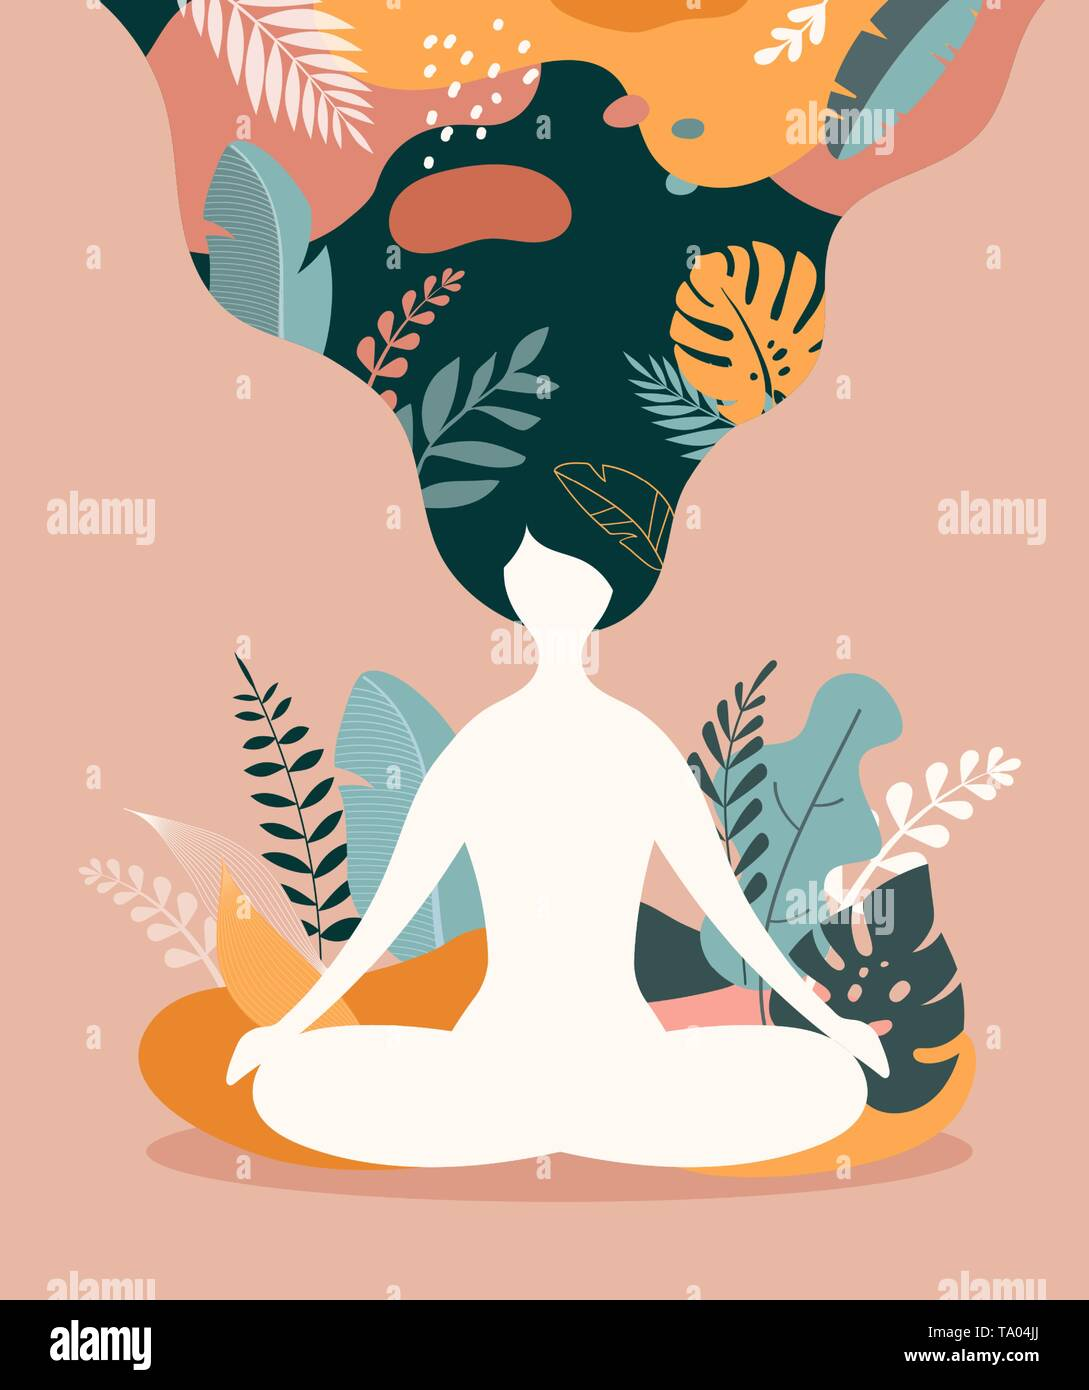 Mindfulness Meditation And Yoga Background In Pastel Vintage Colors Women Sitting With Crossed Legs And Meditating Stock Vector Image Art Alamy